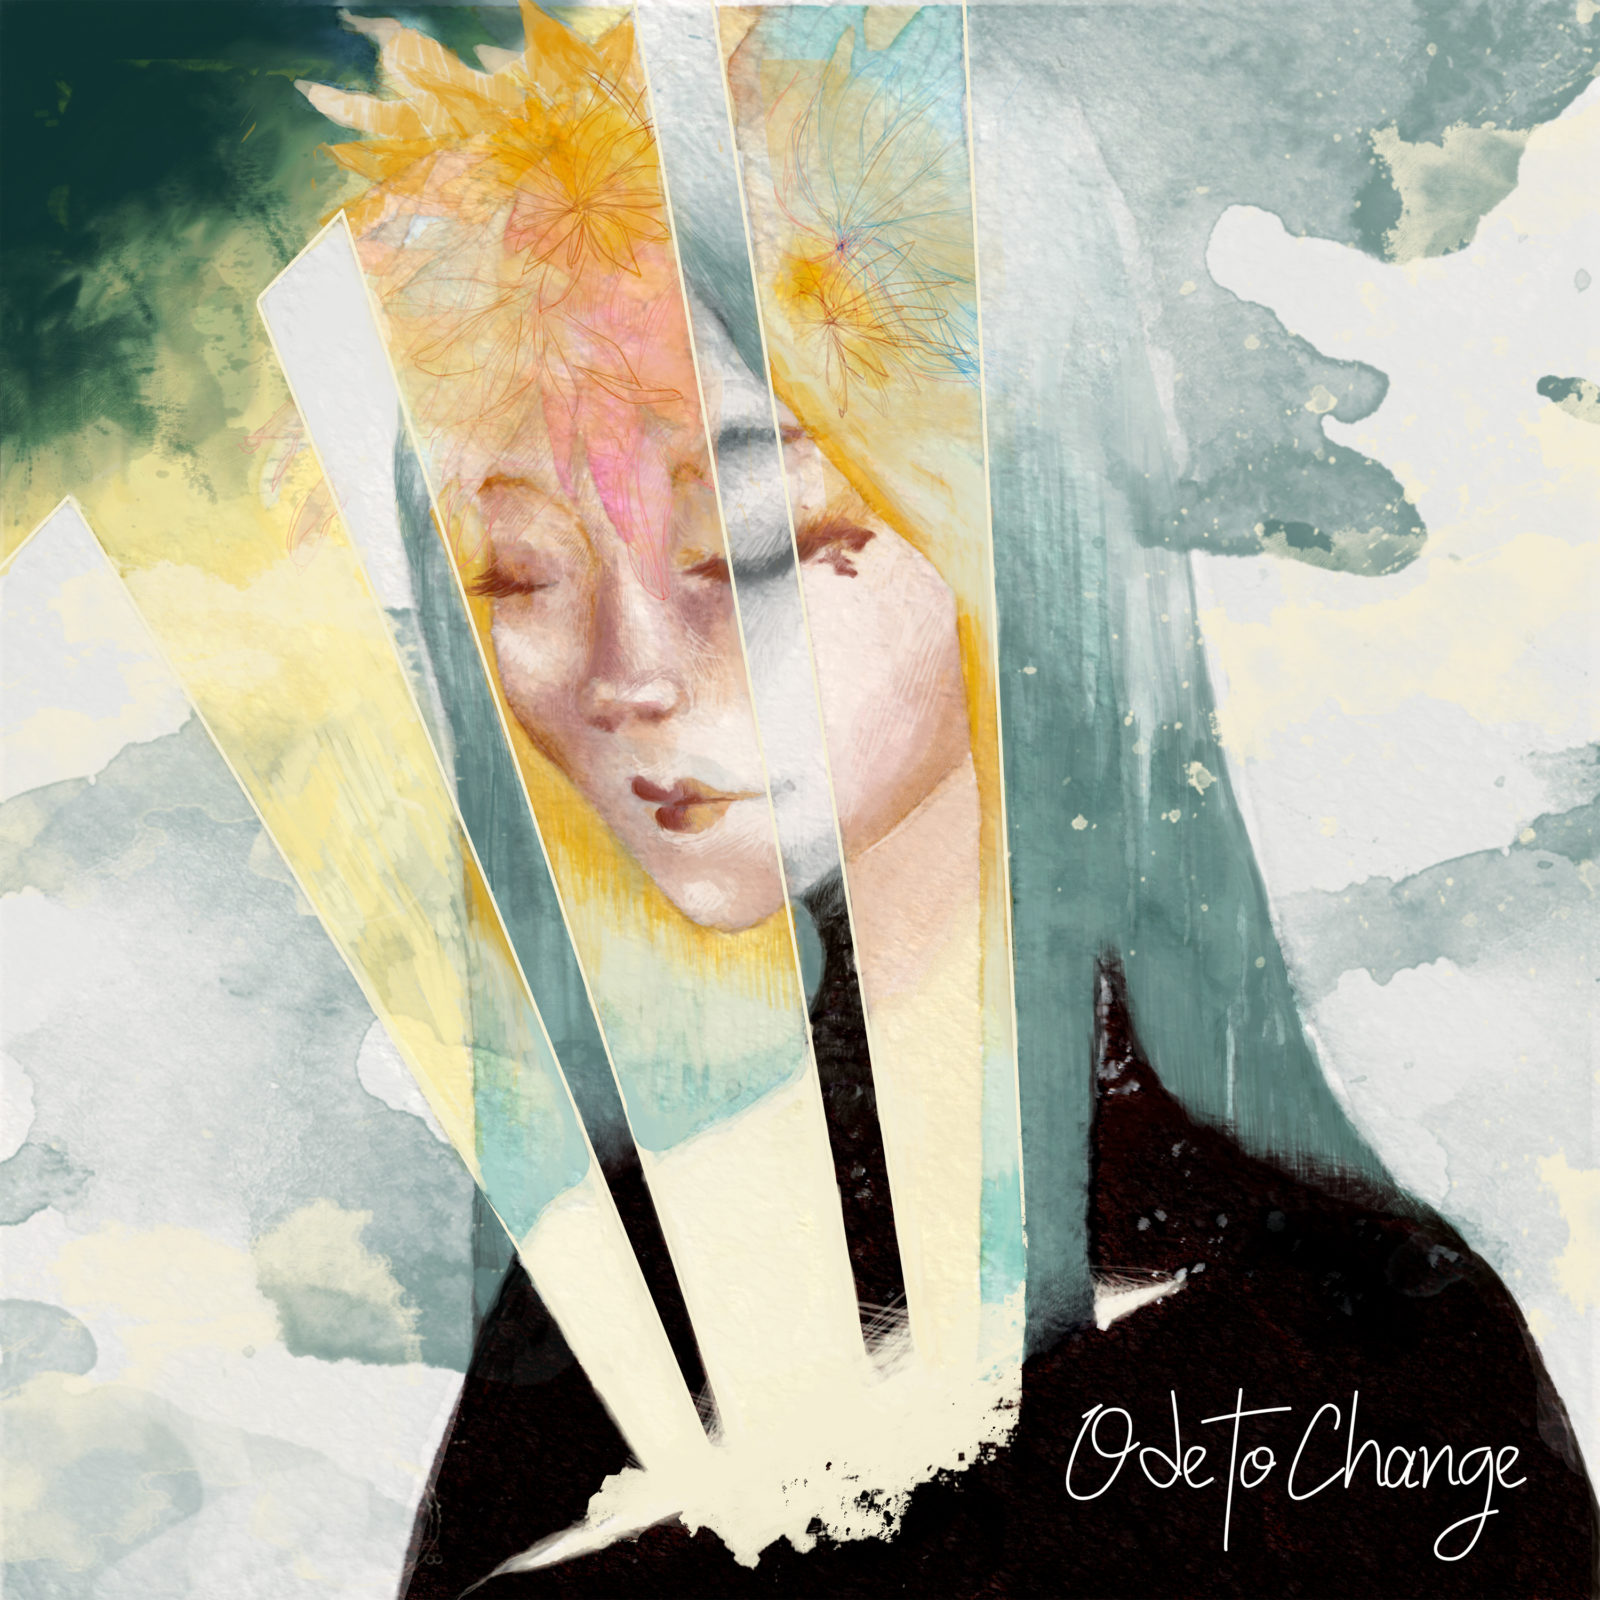 Ode to Change1